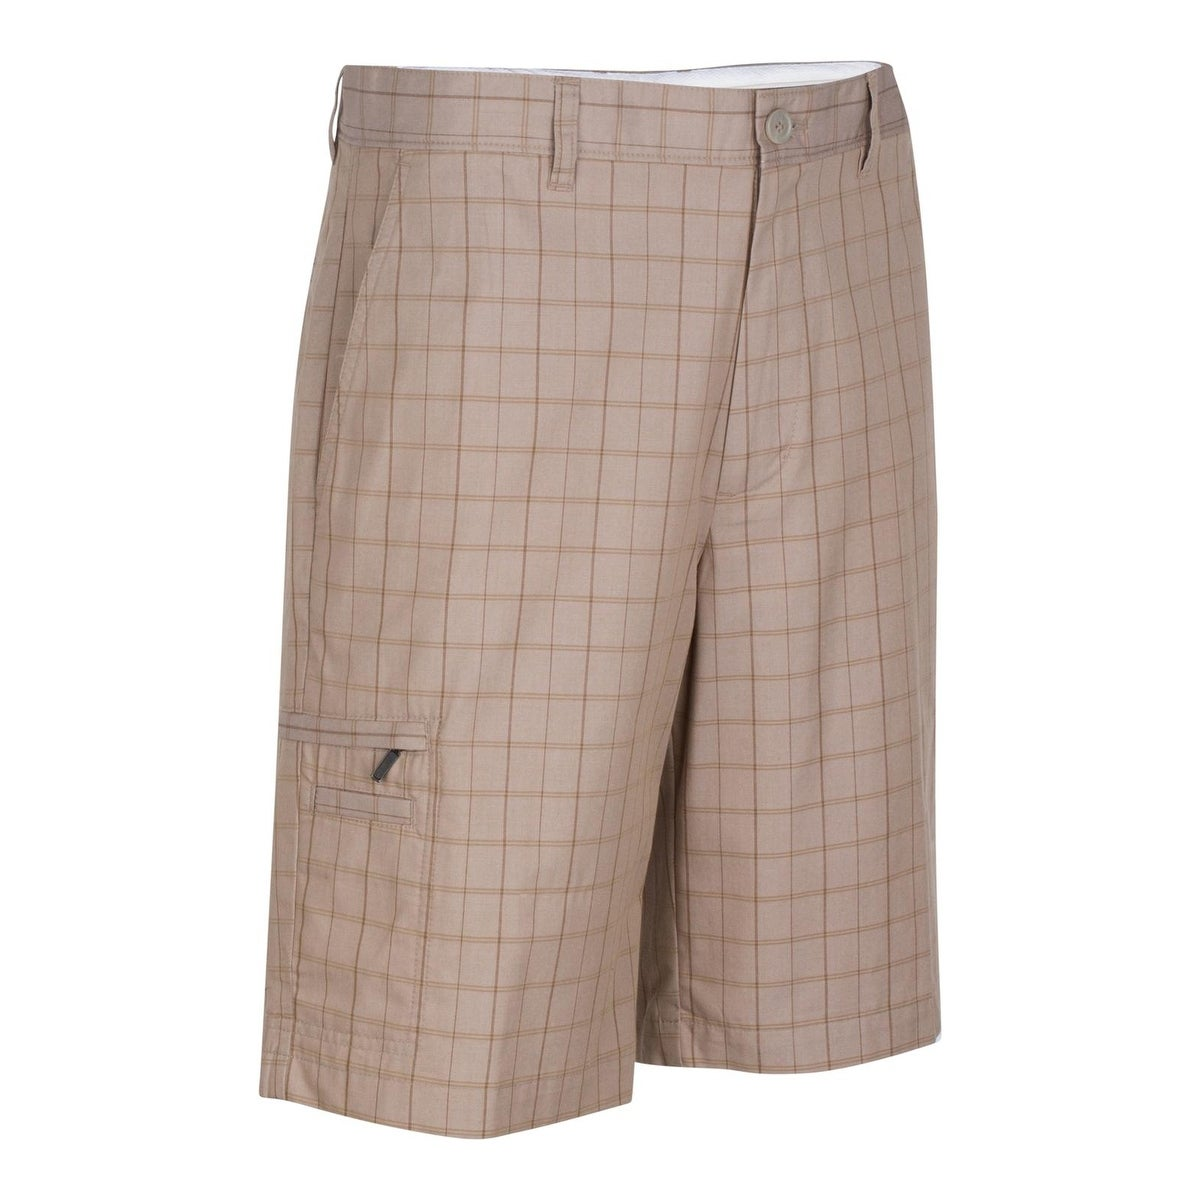 53112349de Shop Greg Norman Mens Cargo Shorts Moisture Wicking Plaid - Free Shipping  On Orders Over $45 - Overstock - 16004618